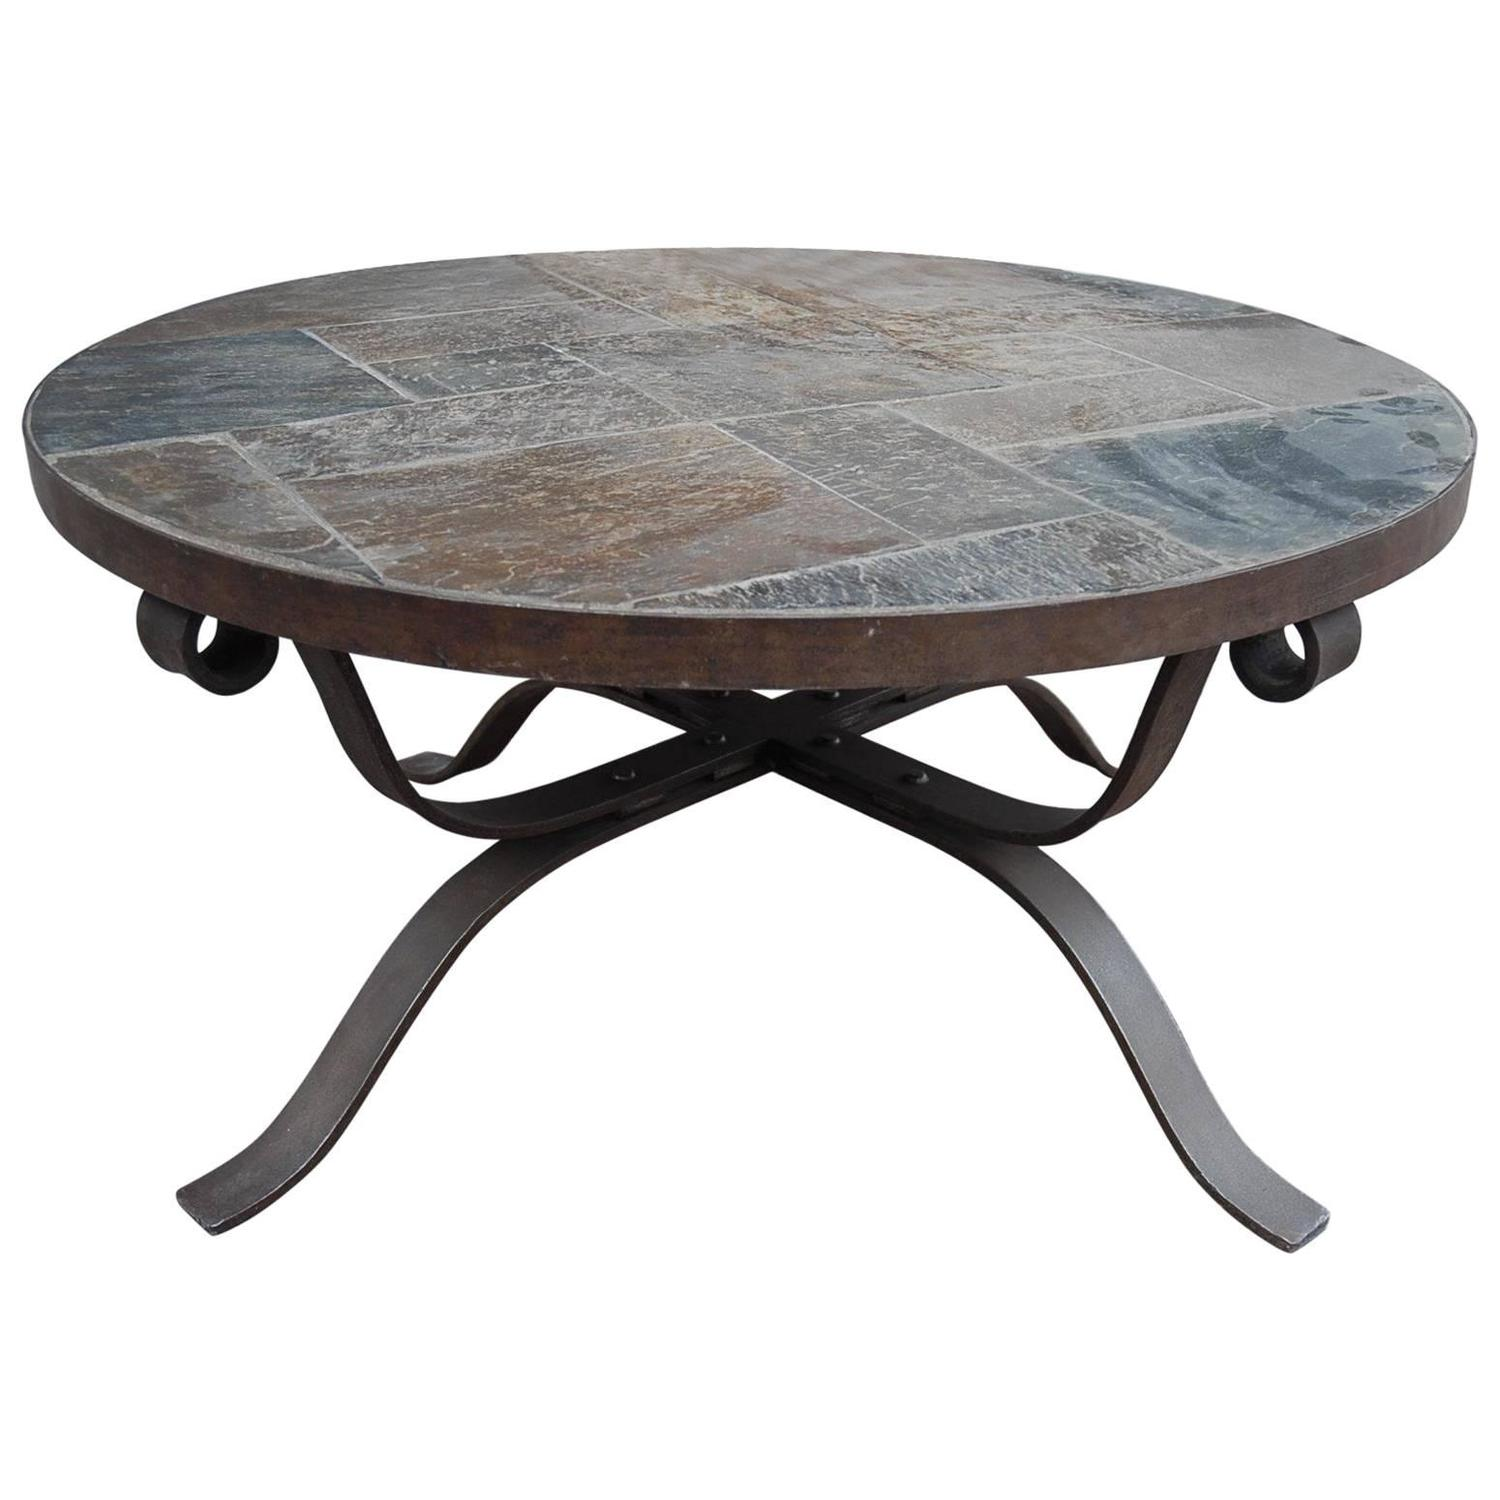 Slate And Glass Coffee Table For Sale: Paul Kingma Style Wrought Iron And Slate Round Coffee